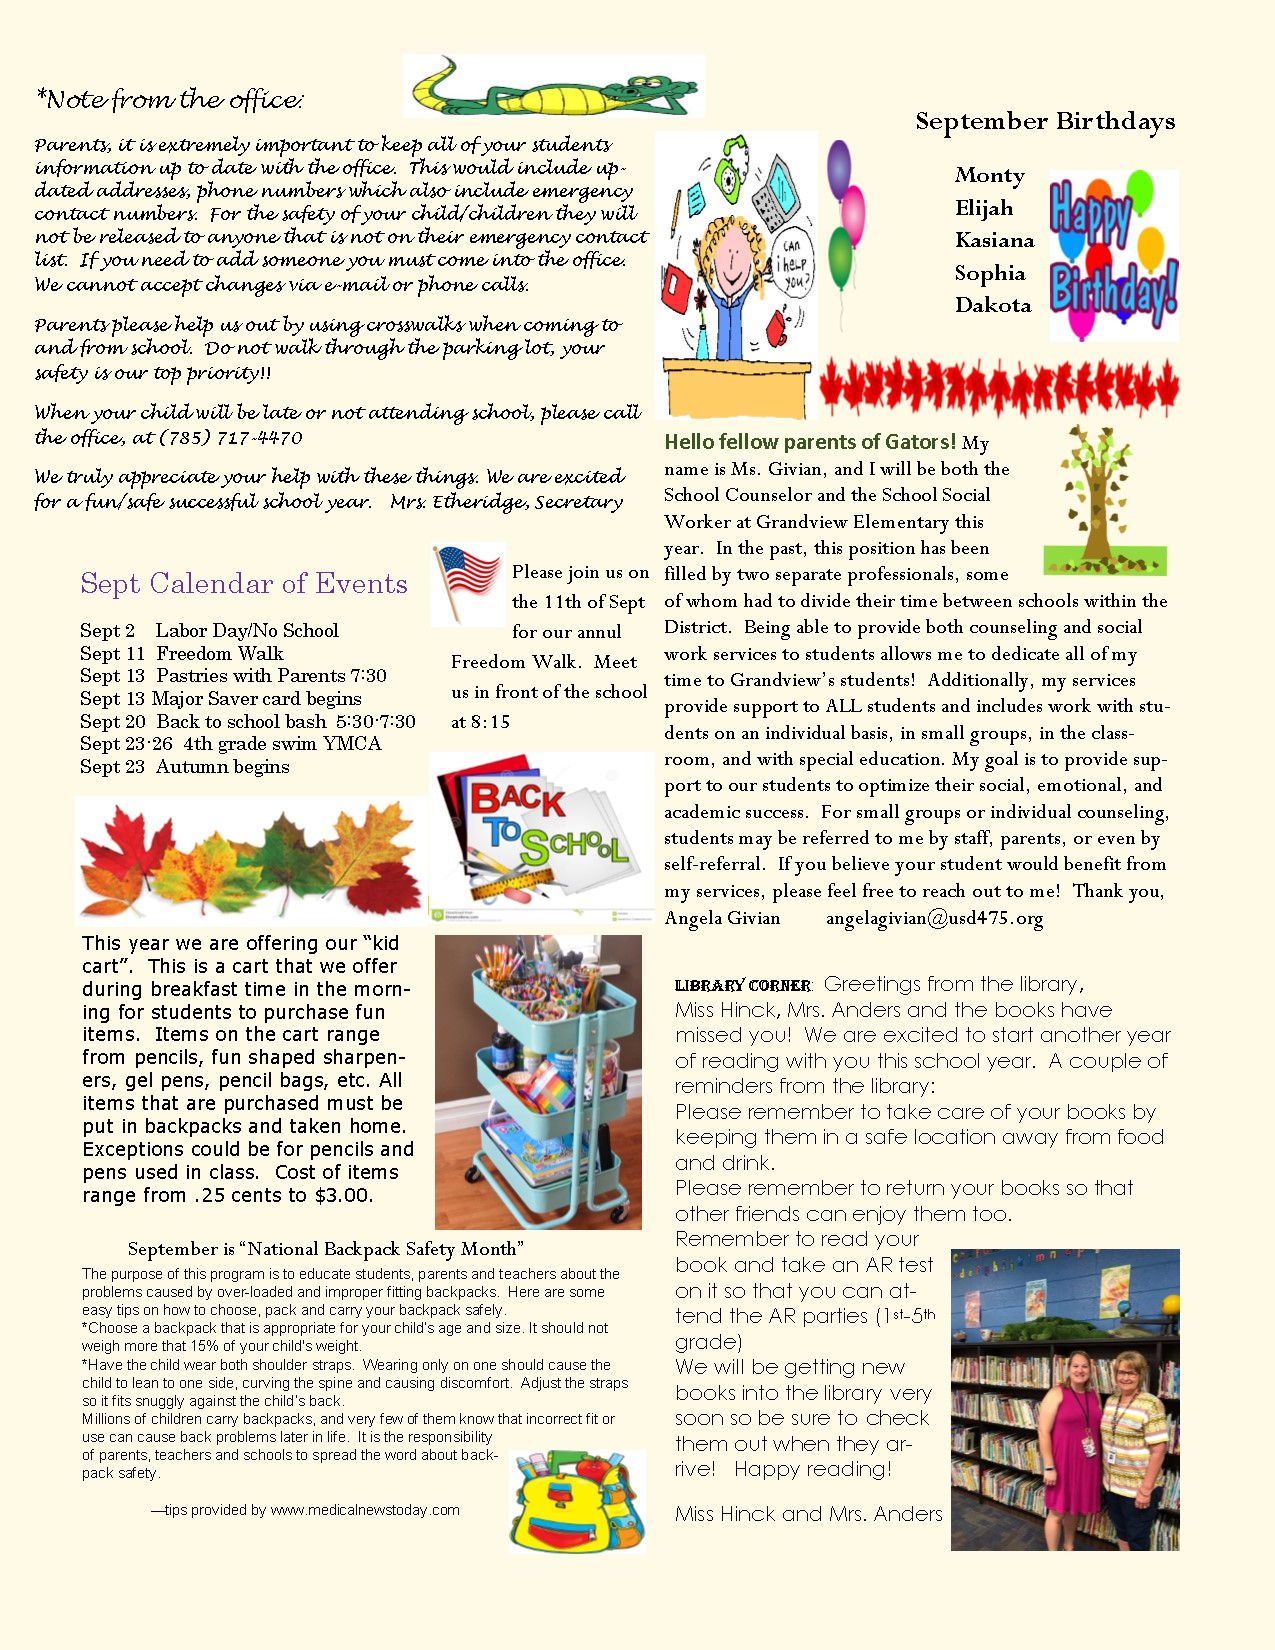 September Newsletter...please see text below.